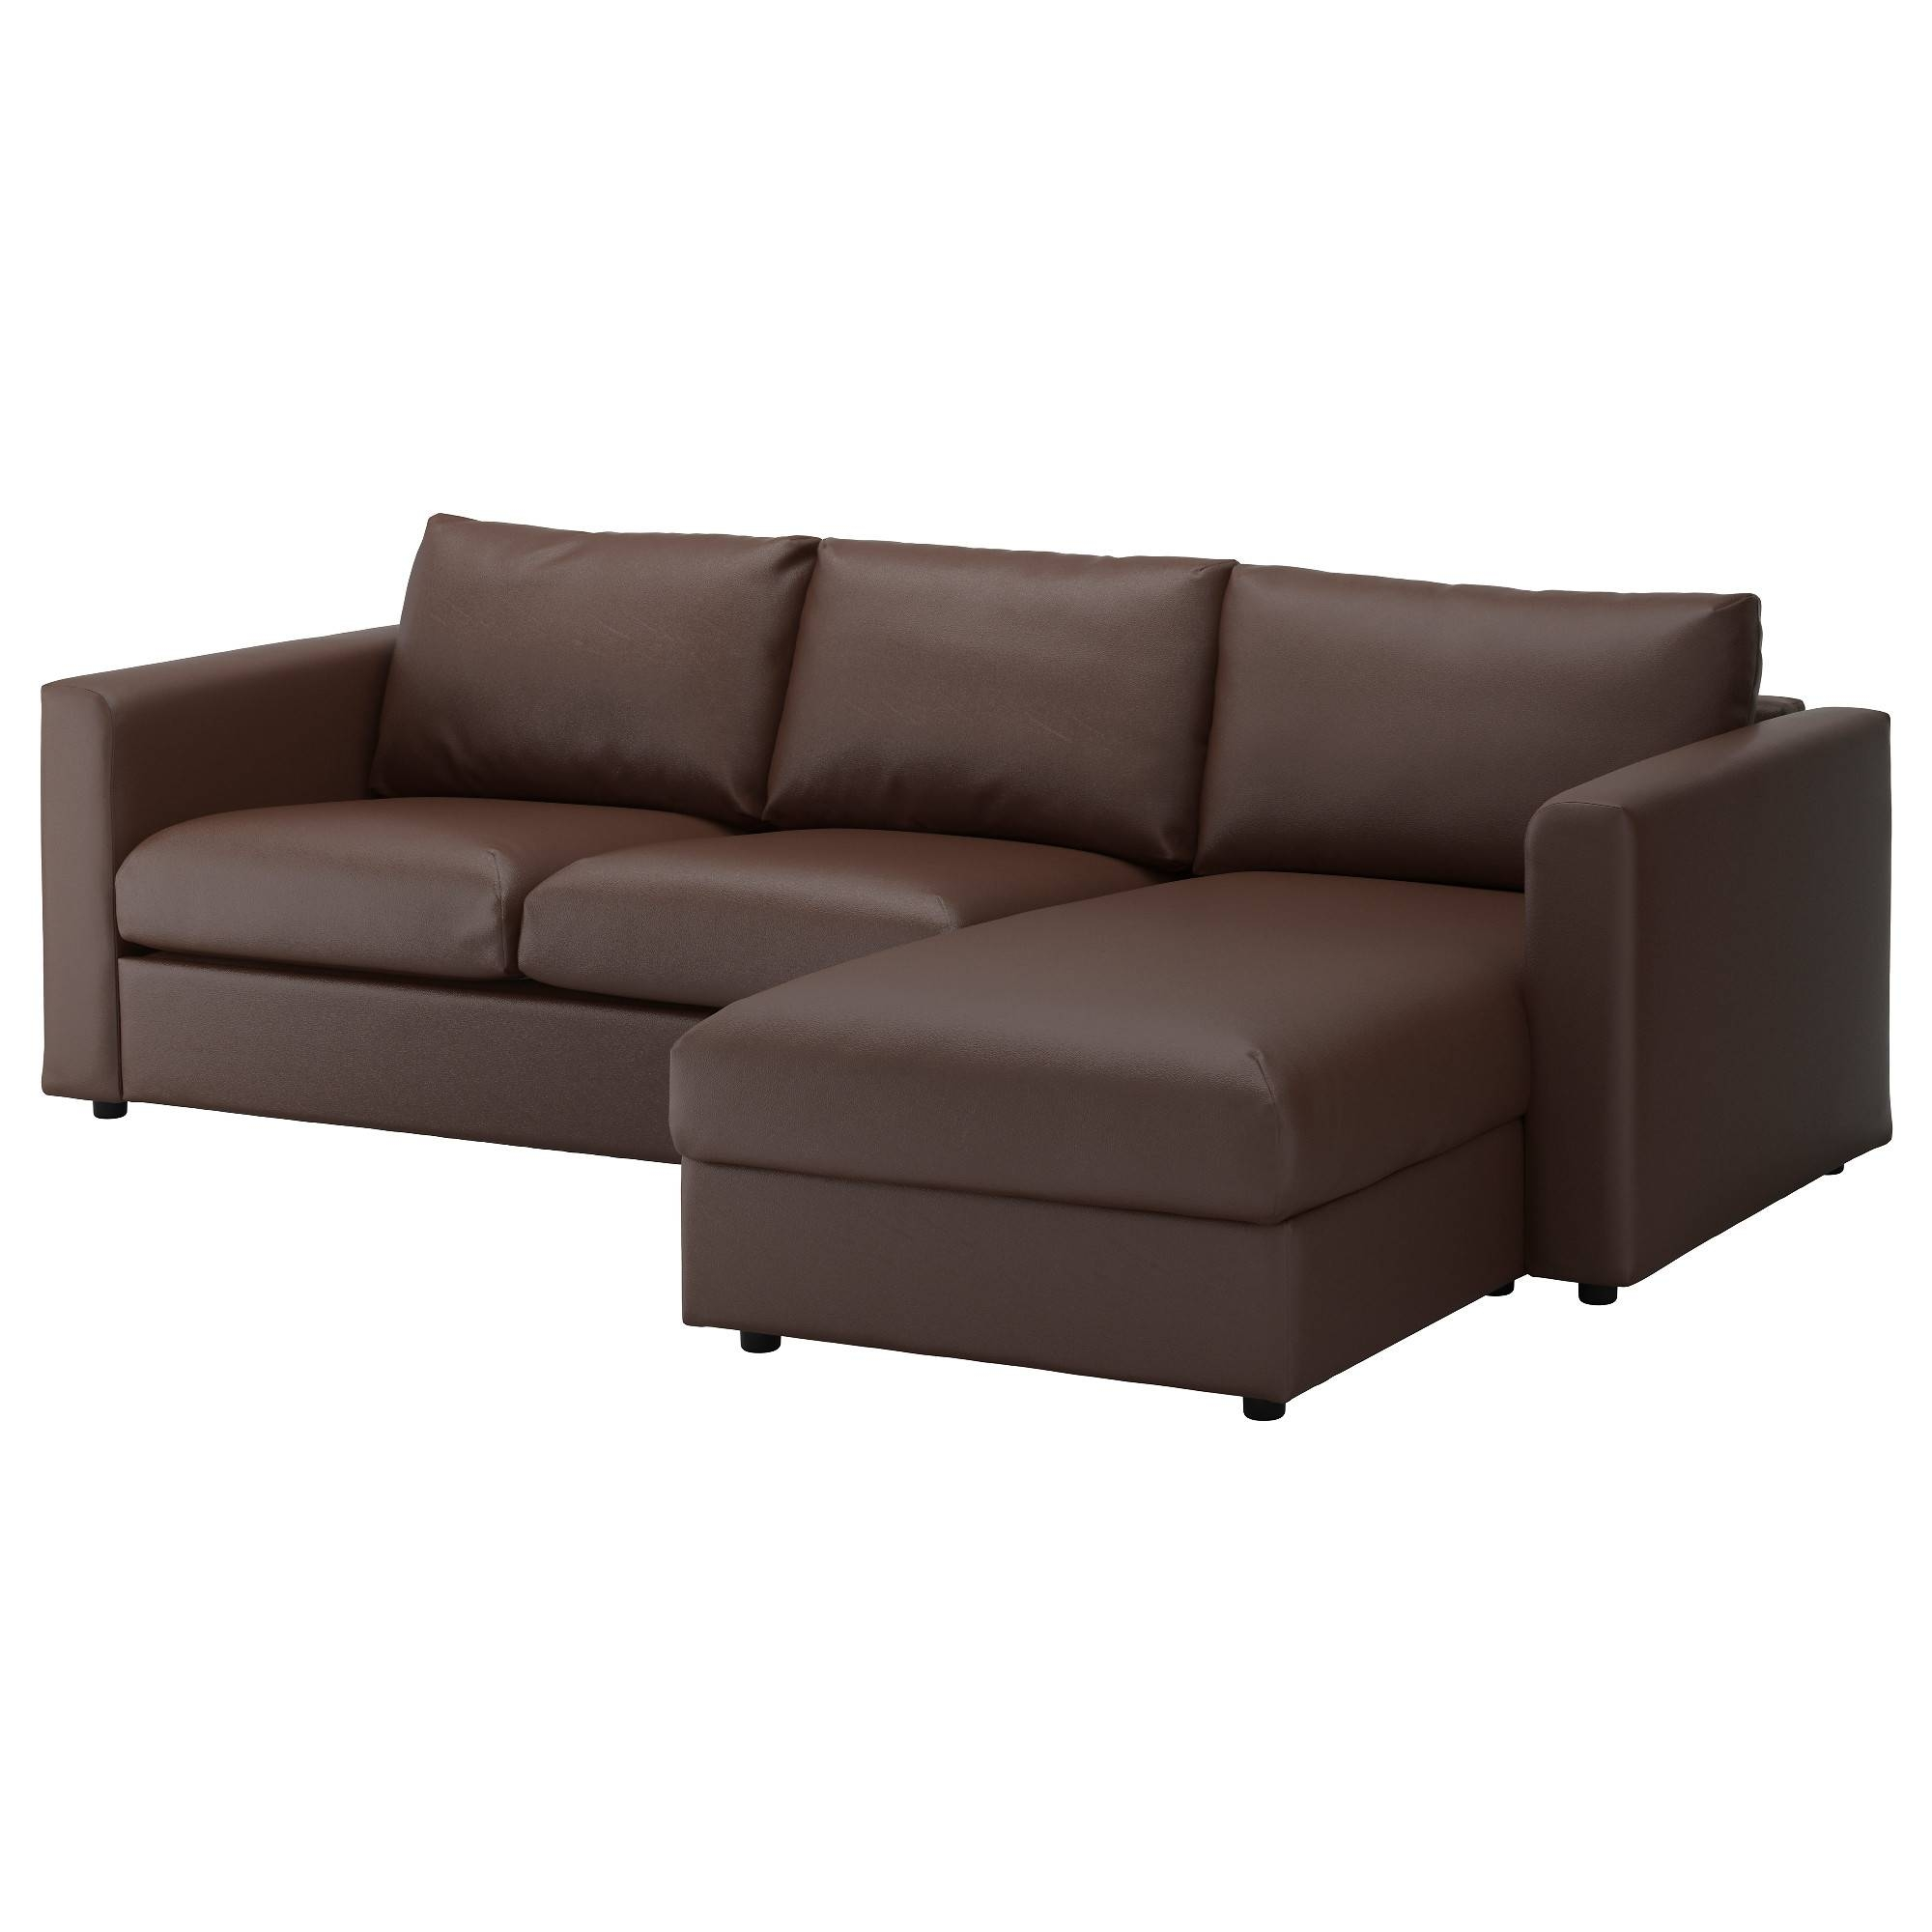 Leather & Faux Leather Couches, Chairs & Ottomans - Ikea pertaining to Cushion Sofa Beds (Image 12 of 30)